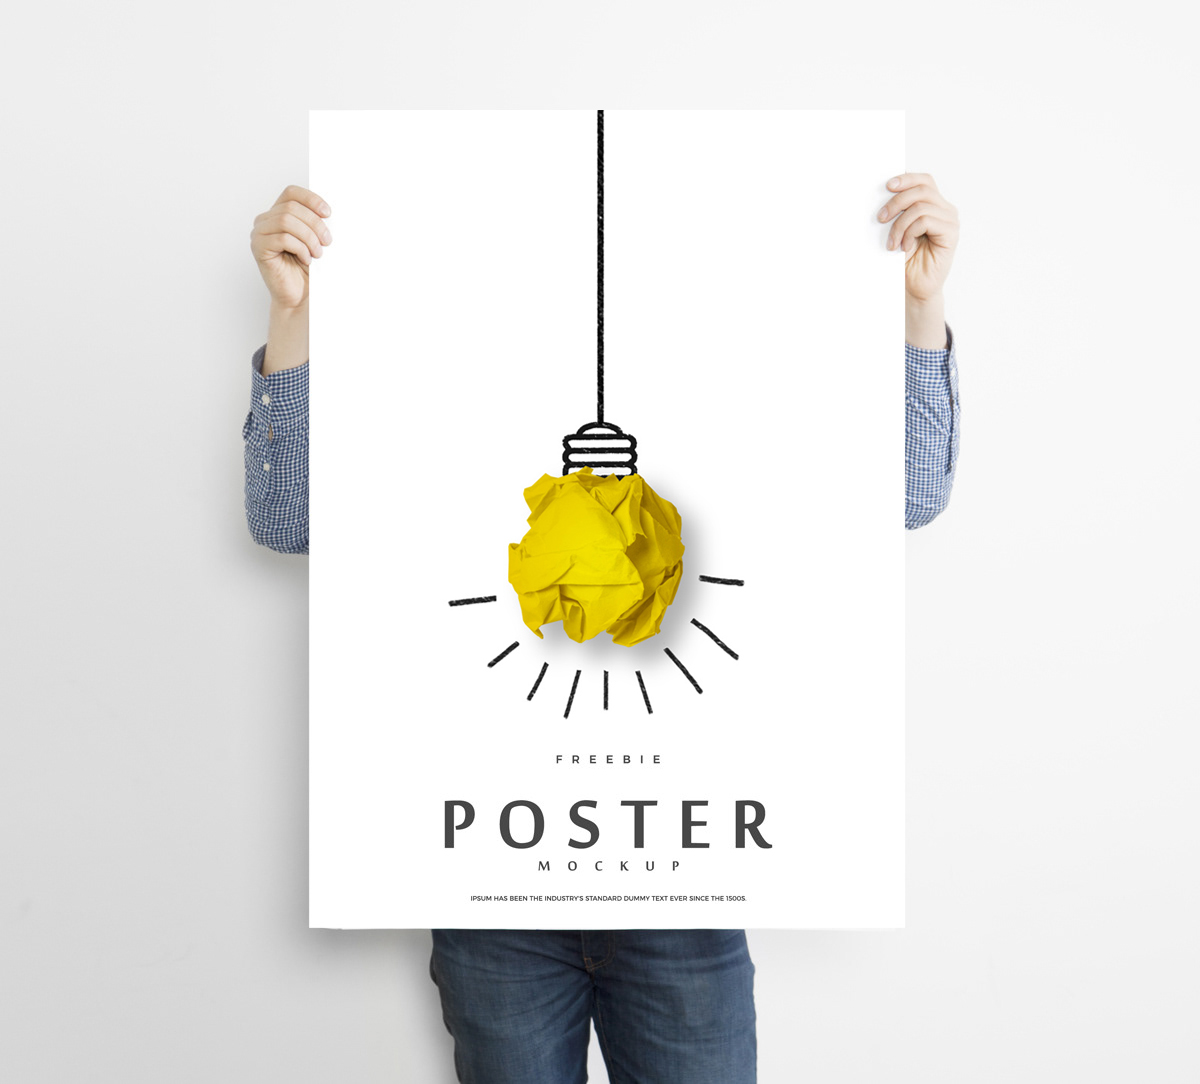 Free-Man-Holding-Creative-Poster-Mockup-For-Promotion-2018